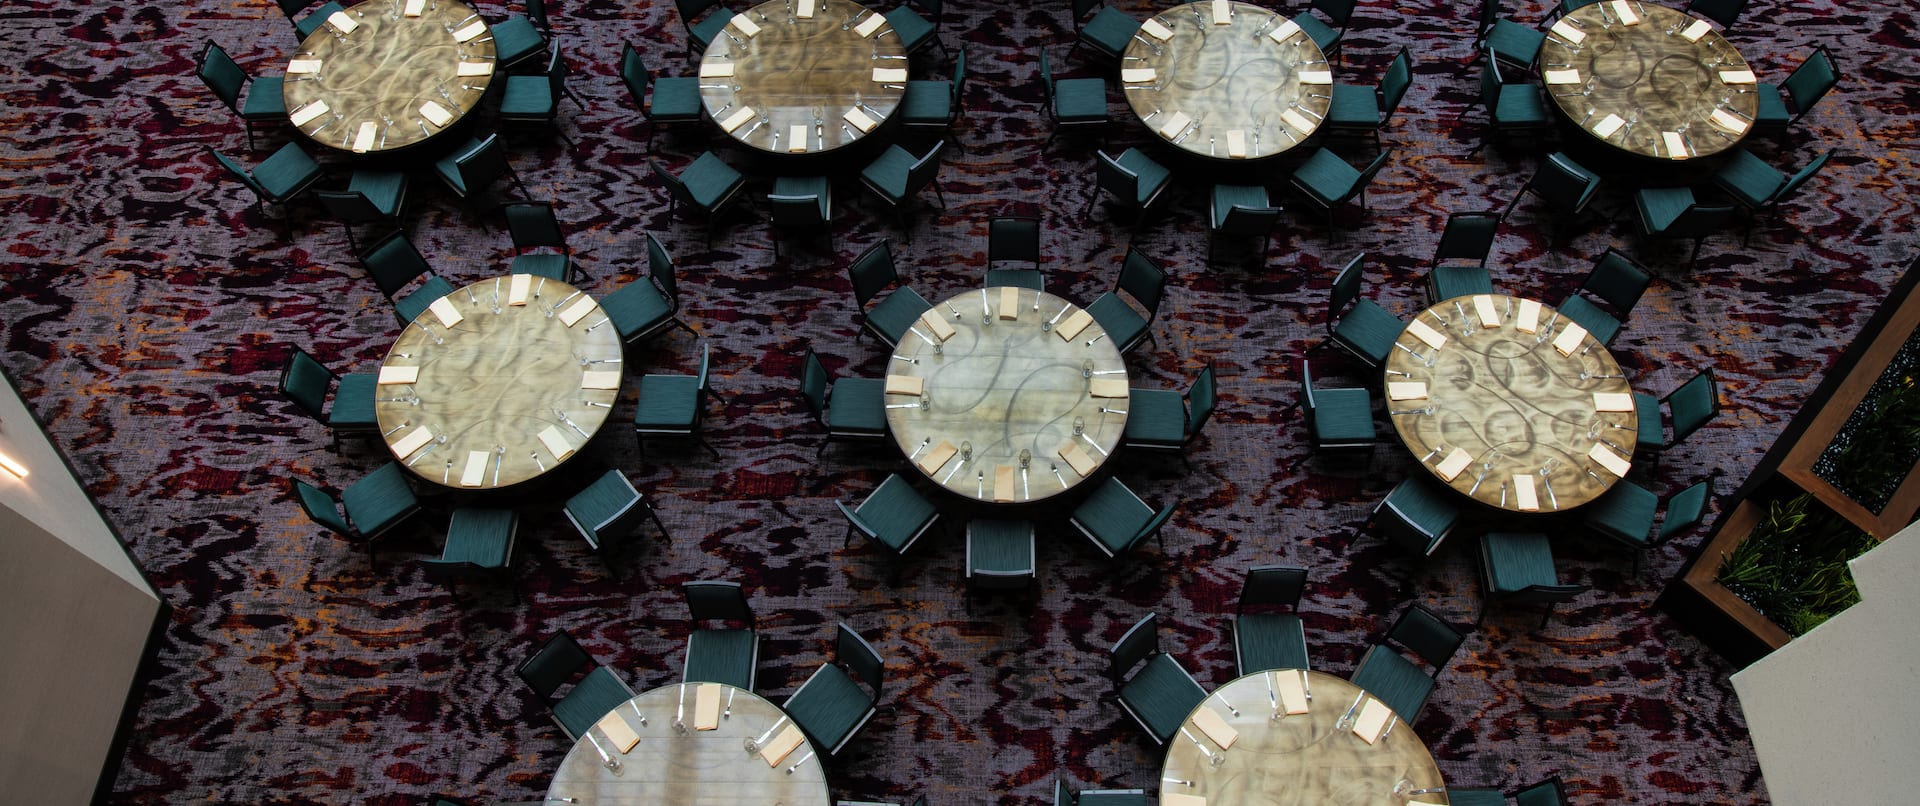 Aerial View of Atrium with Round Tables and Chairs